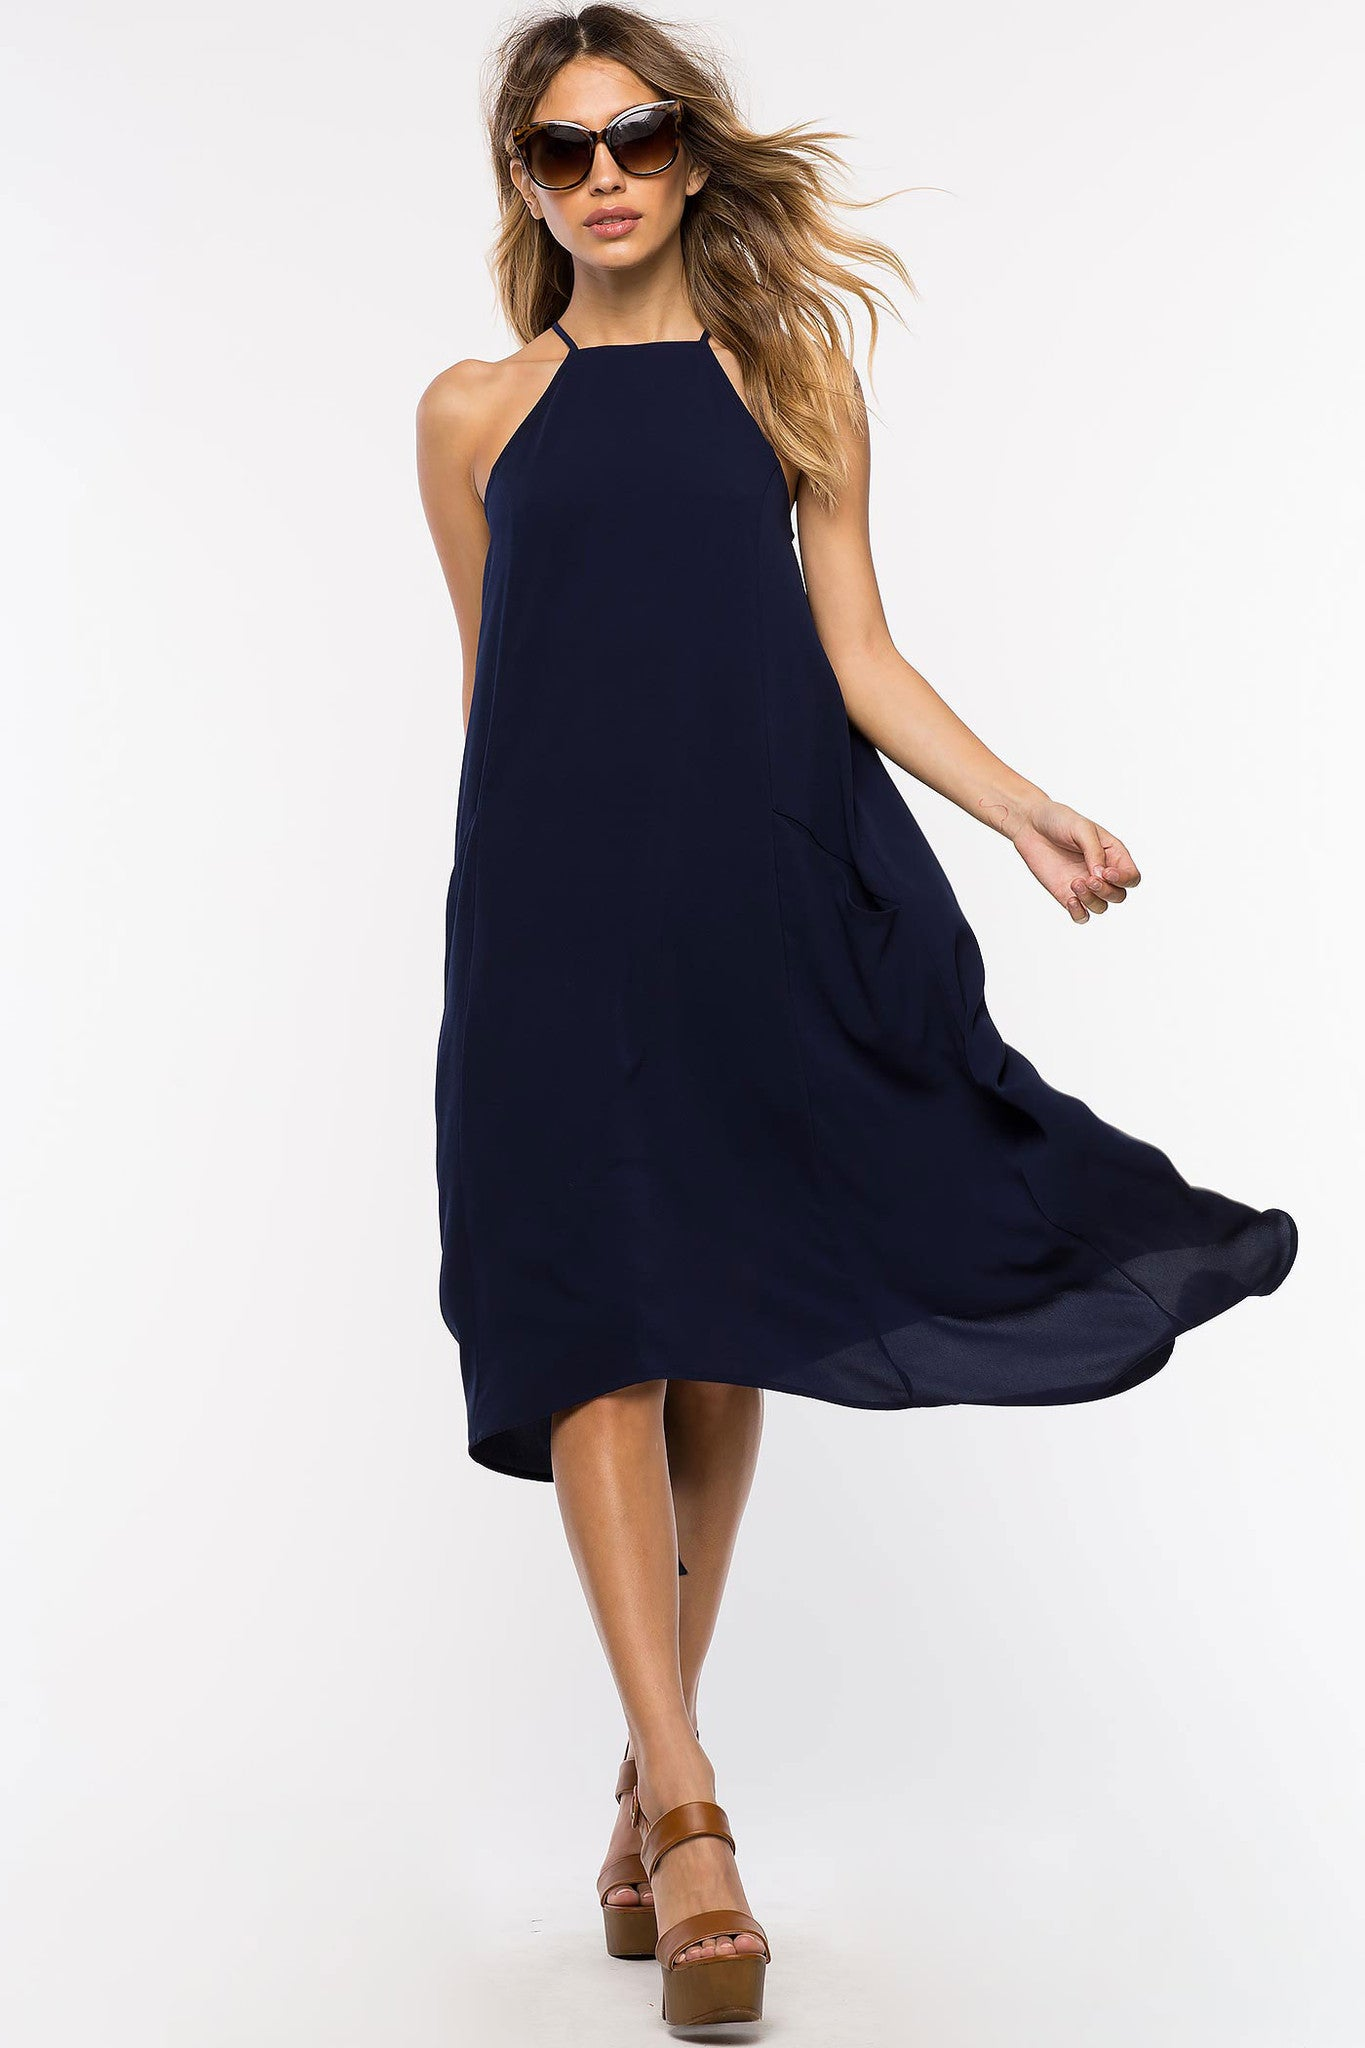 Womens Casual Street Style Fashion Sleeveless Loose Fit Tank Dress with Asymmetric hem and pockets. Navy Blue, front view